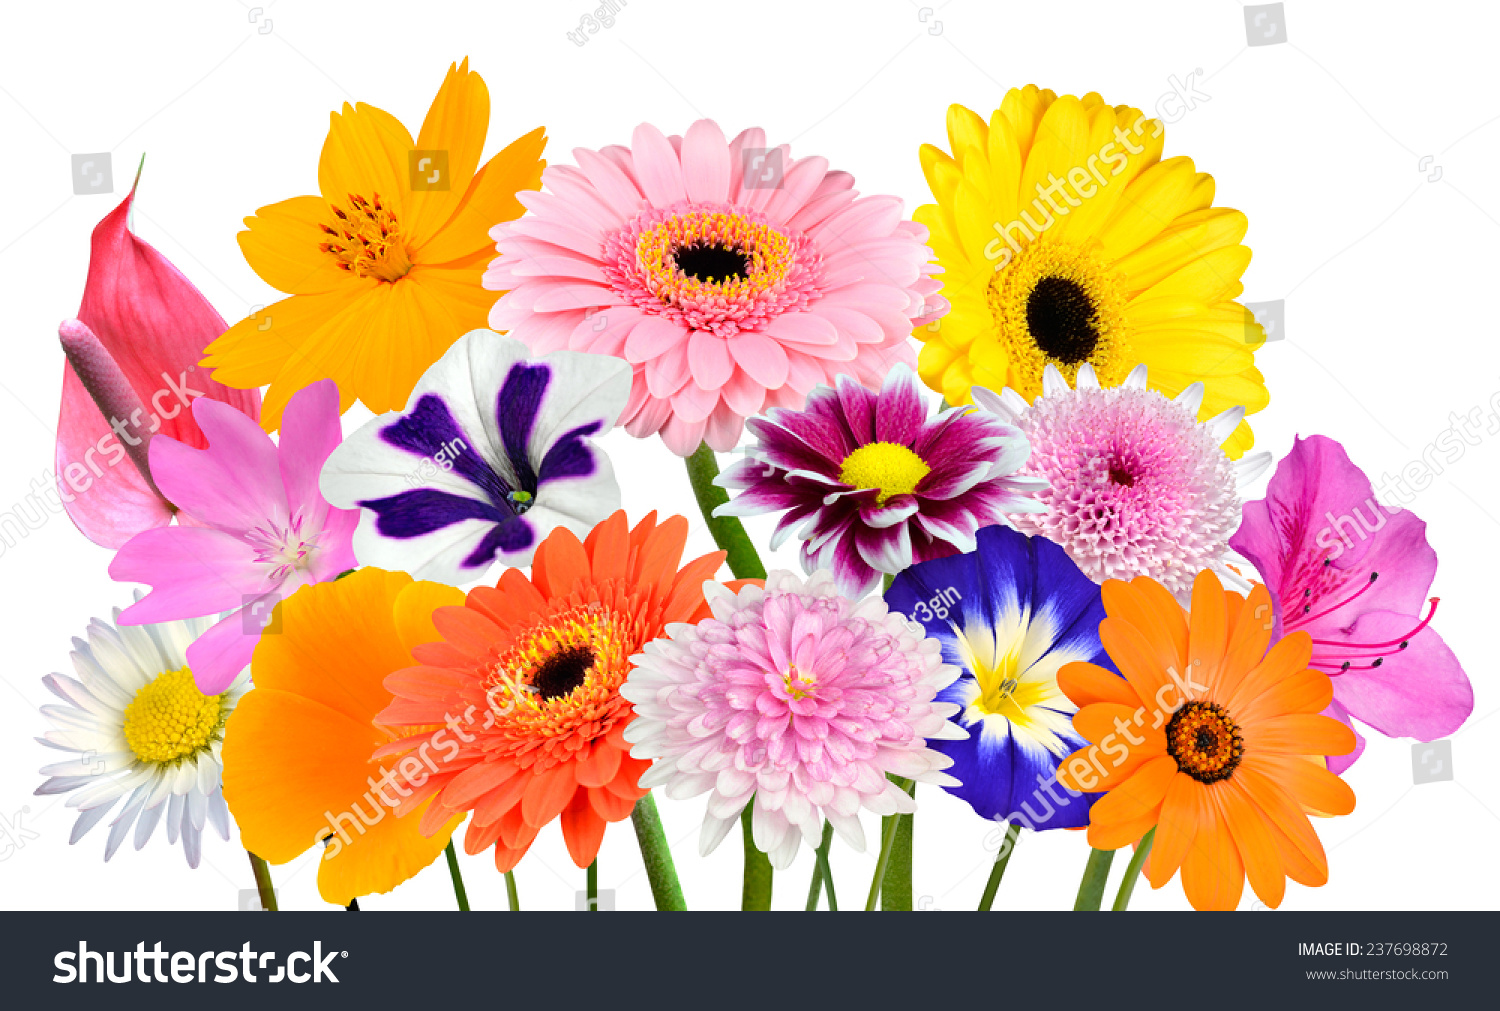 Flower bouquet collection of various colorful flowers and id 237698872 izmirmasajfo